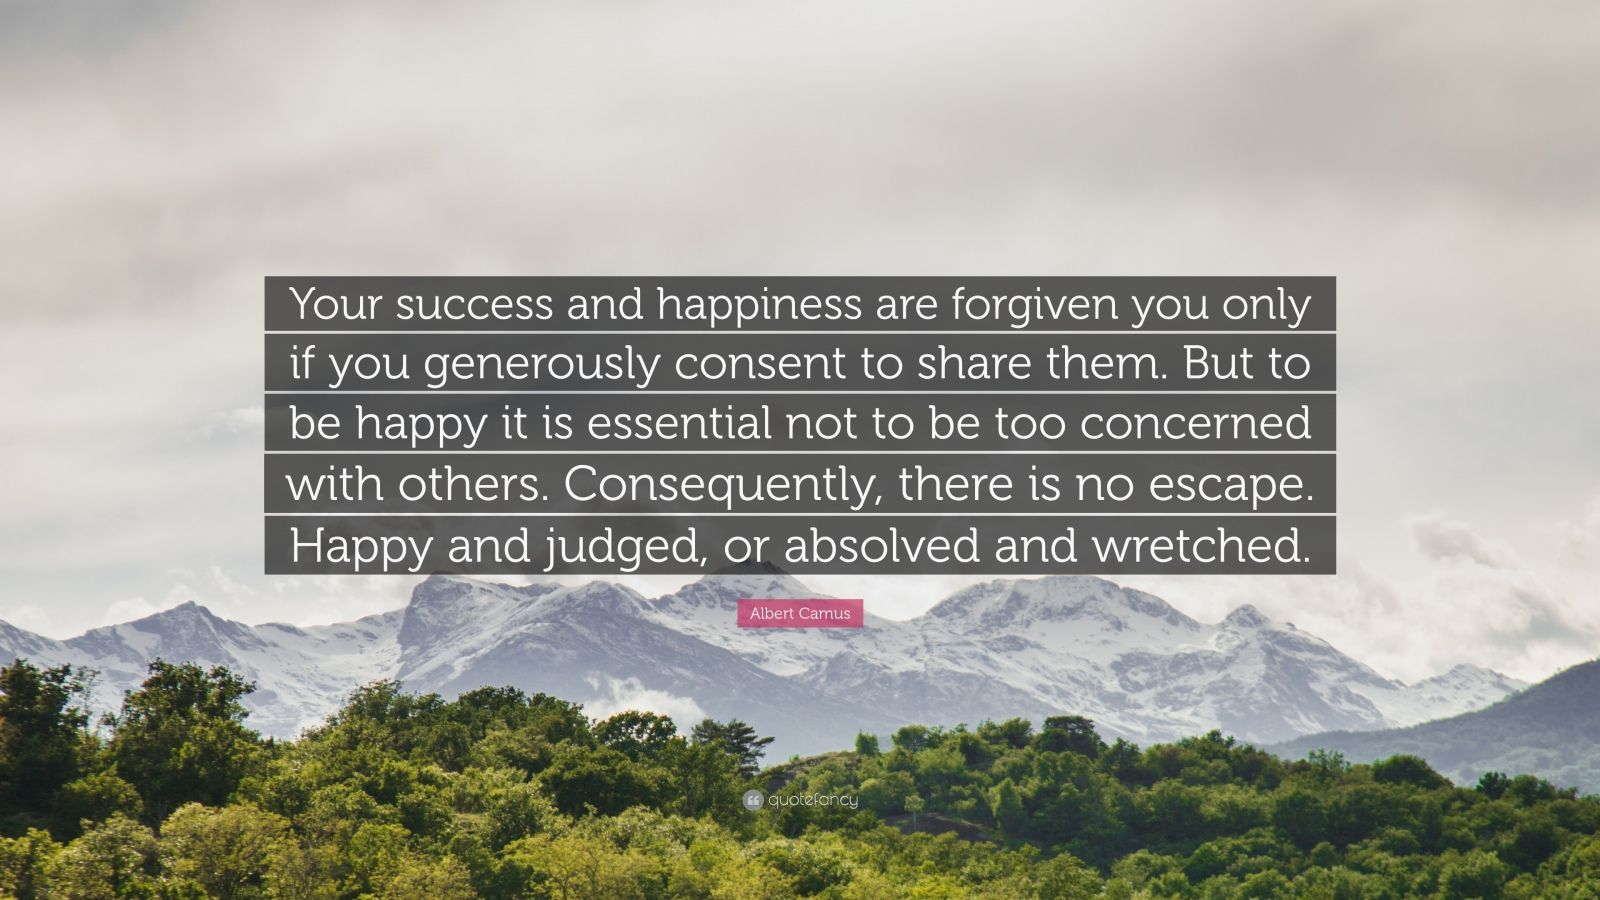 "Albert Camus Quote: ""Your success and happiness are forgiven you only if you generously consent to share them. But to be happy it is essential not to be too concerned with others. Consequently, there is no escape. Happy and judged, or absolved and wretched."""